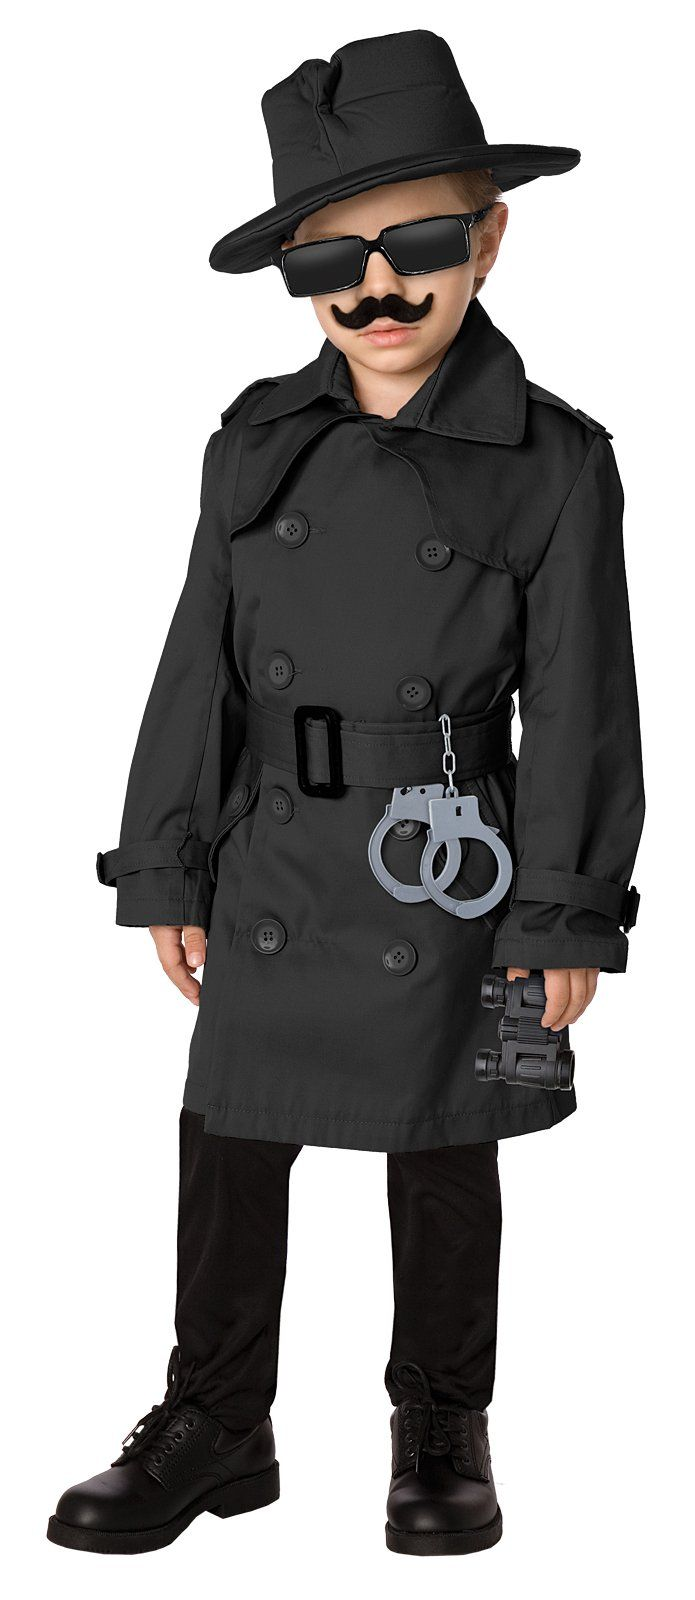 Spy Child Costume Kit from Buycostumes.com